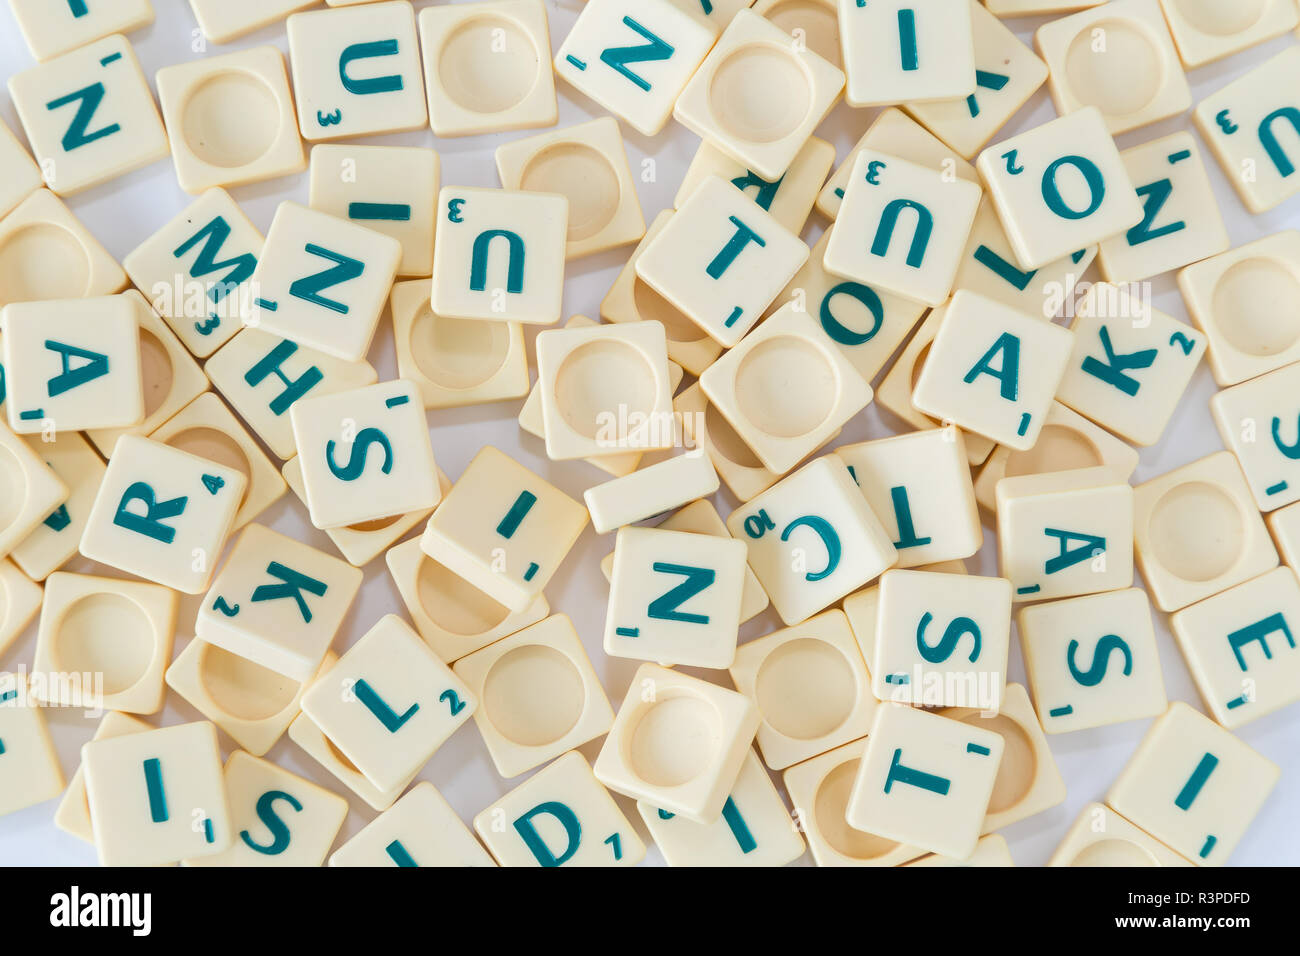 Pile of random Scrabble game letter tiles with score value mixed up background, viewed from above. Stock Photo